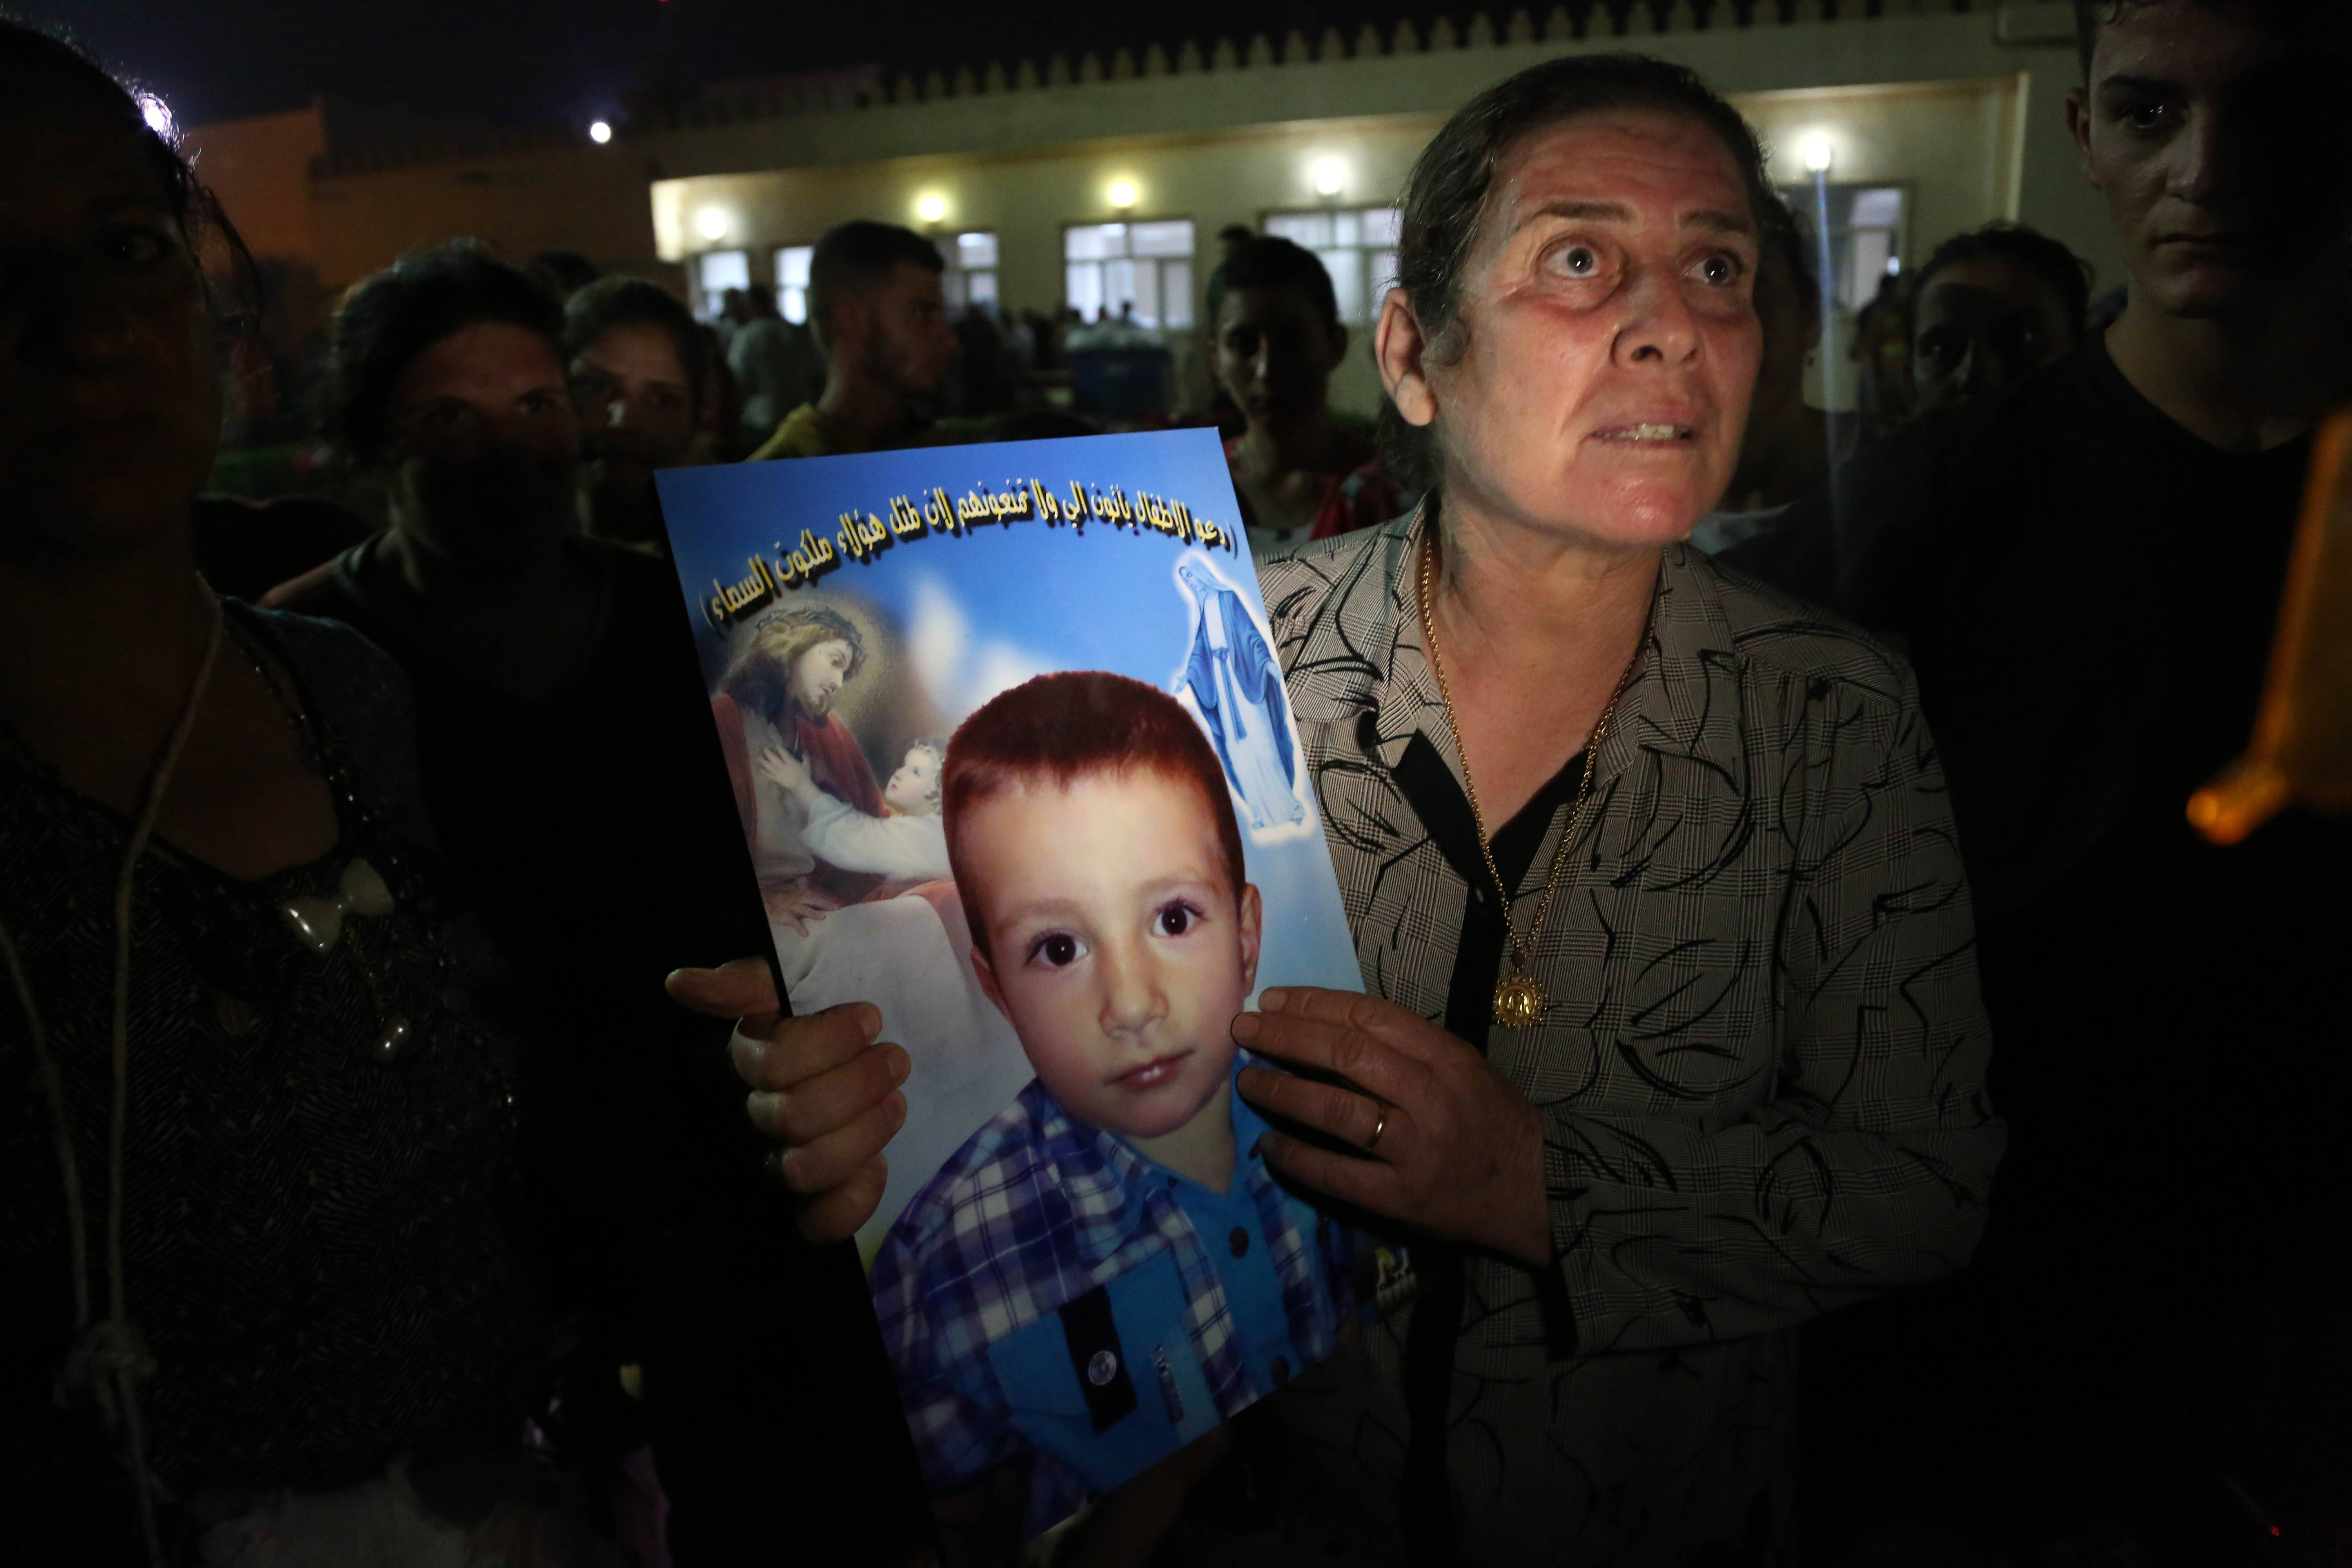 A displaced Iraqi Christian woman holds a picture of her four-year-old relative, David, who was killed by militants, at St. Joseph Church in Irbil, northern Iraq, Thursday, Aug. 7, 2014.